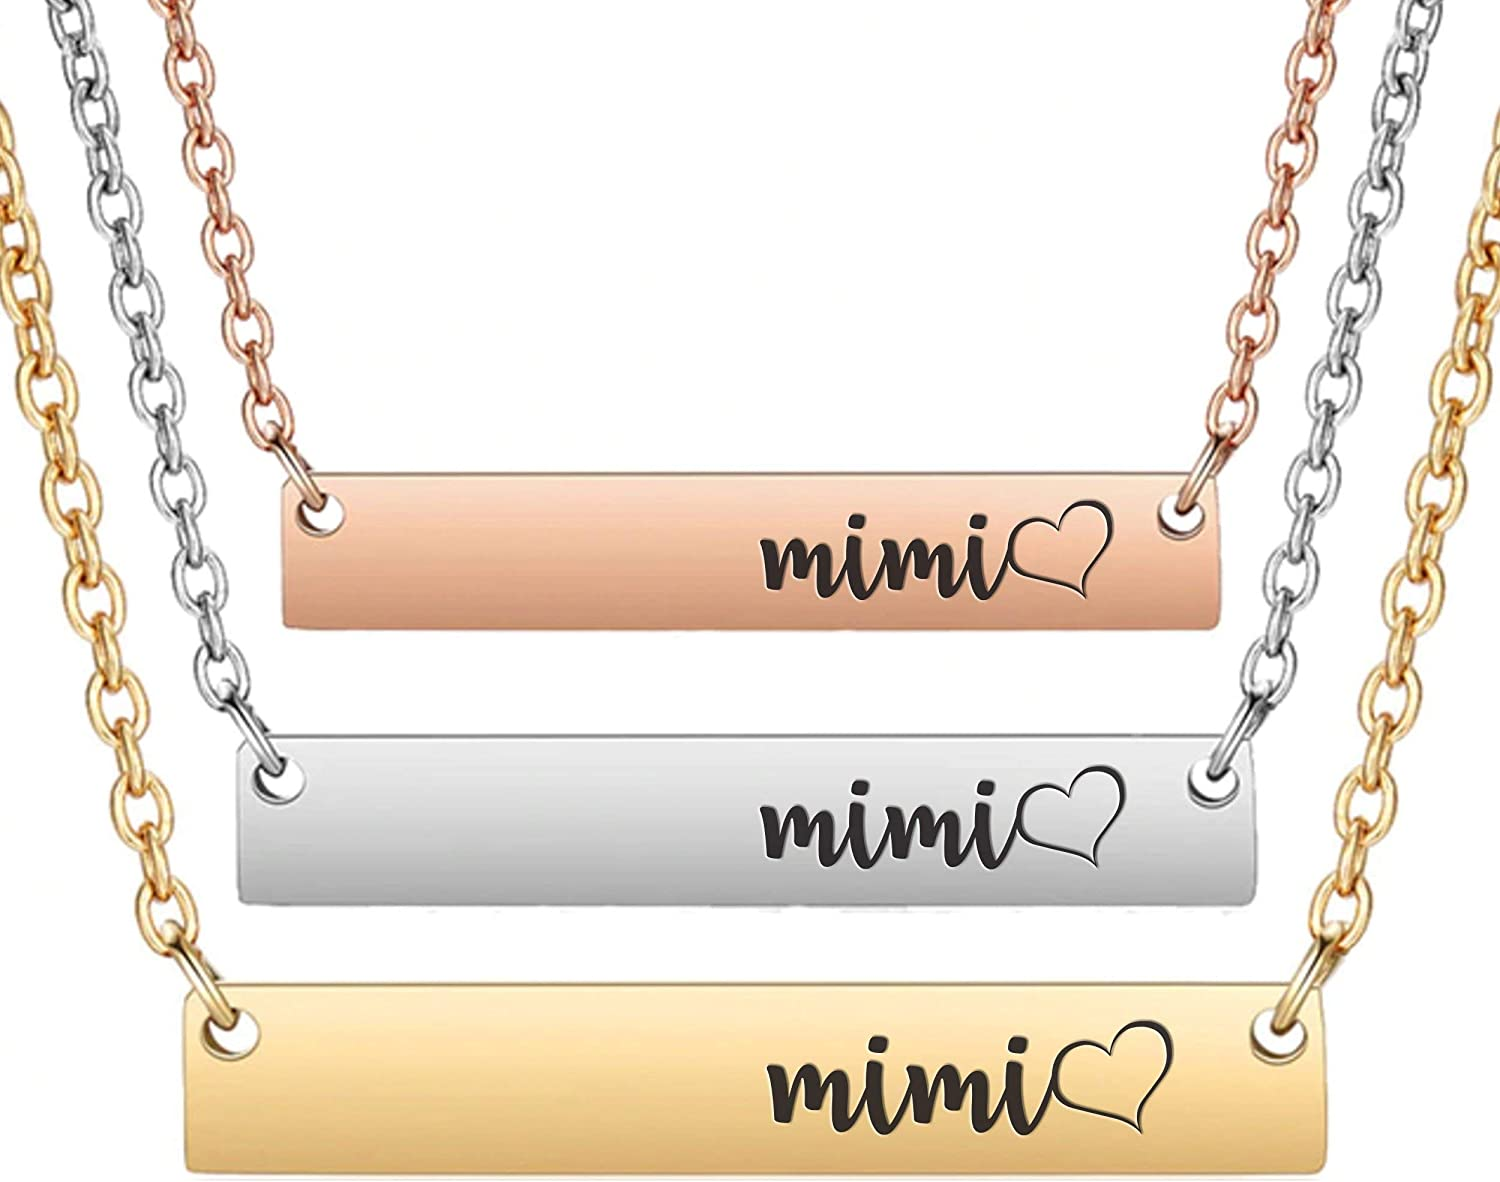 Mimi with Heart - Minimalist Horizontal Bar Necklace Gift | Rose Gold Pendant Necklaces | Silver Engraved Jewelry Gifts for Mom | Birthday Ideas Women Wife Grandma Grandmother Grams